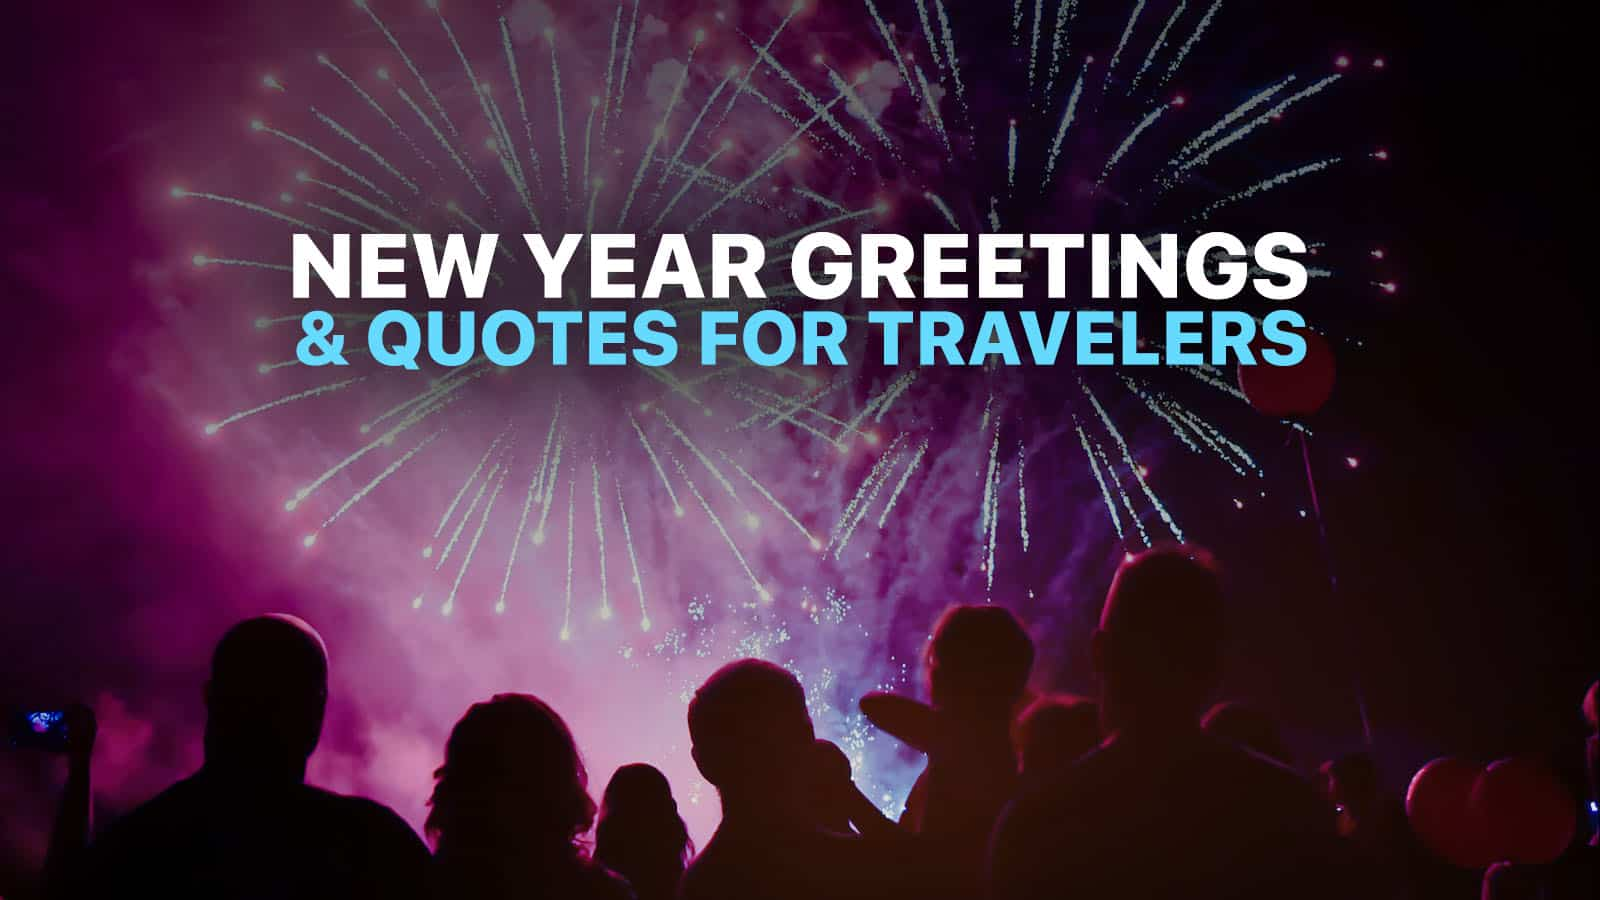 12 new year quotes and greetings for travelers